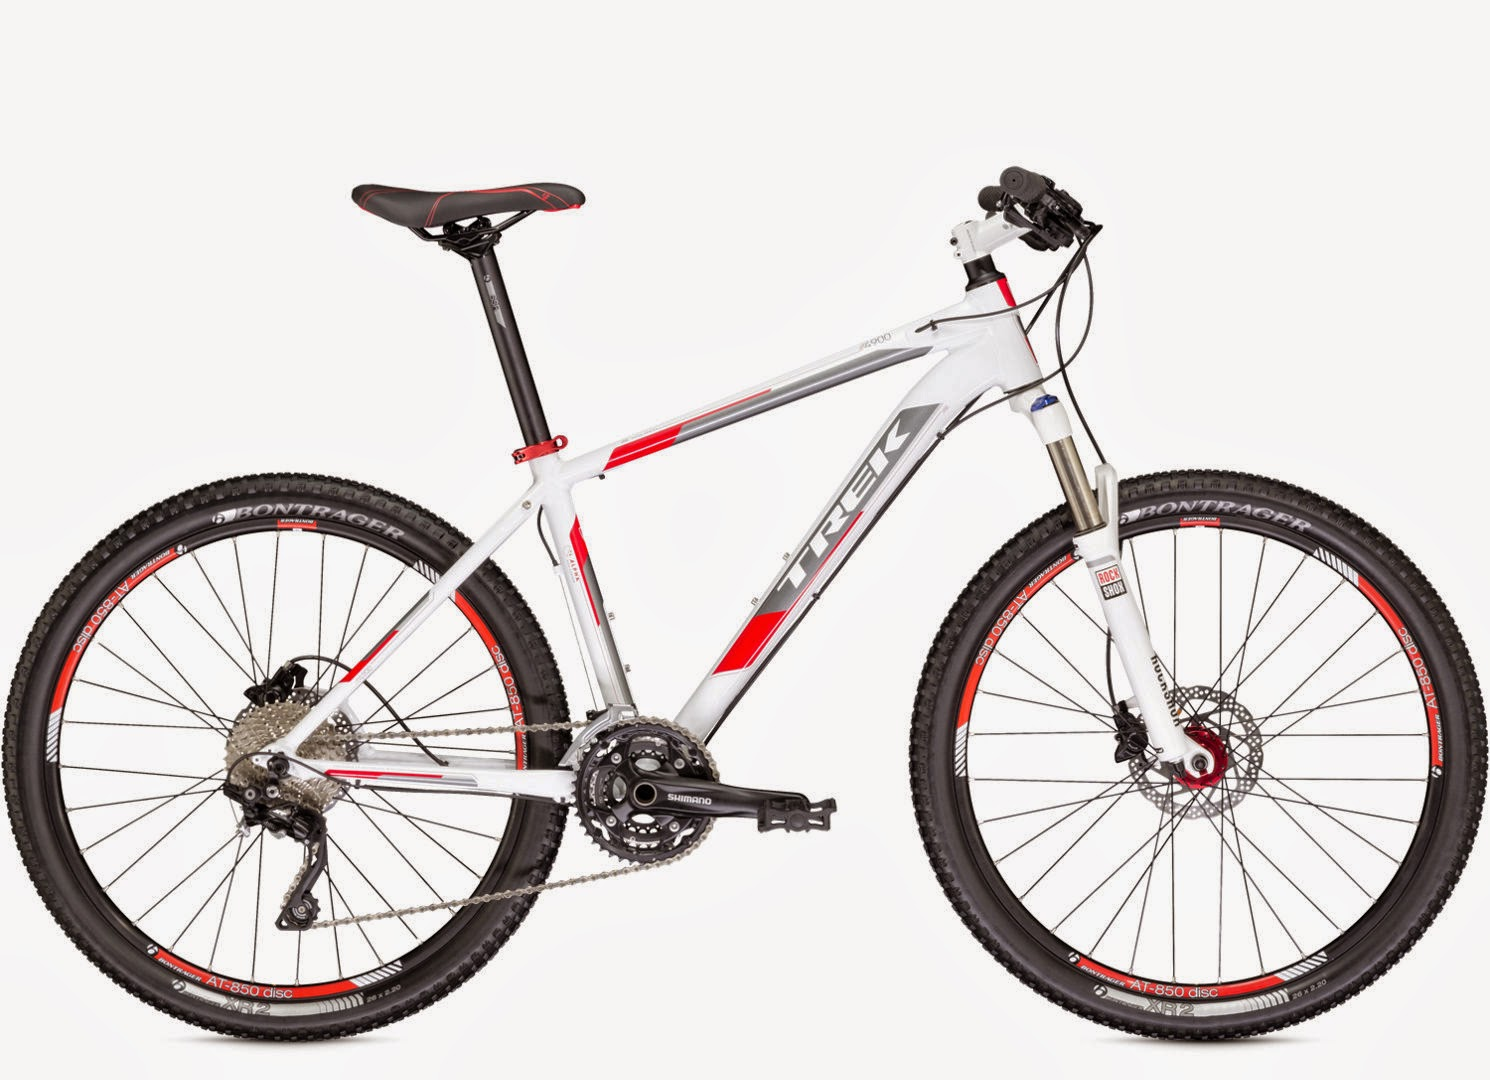 Trek 4900 Disc 2010 Mountain Bike | MOUNTAIN BIKES | Evans Cycles